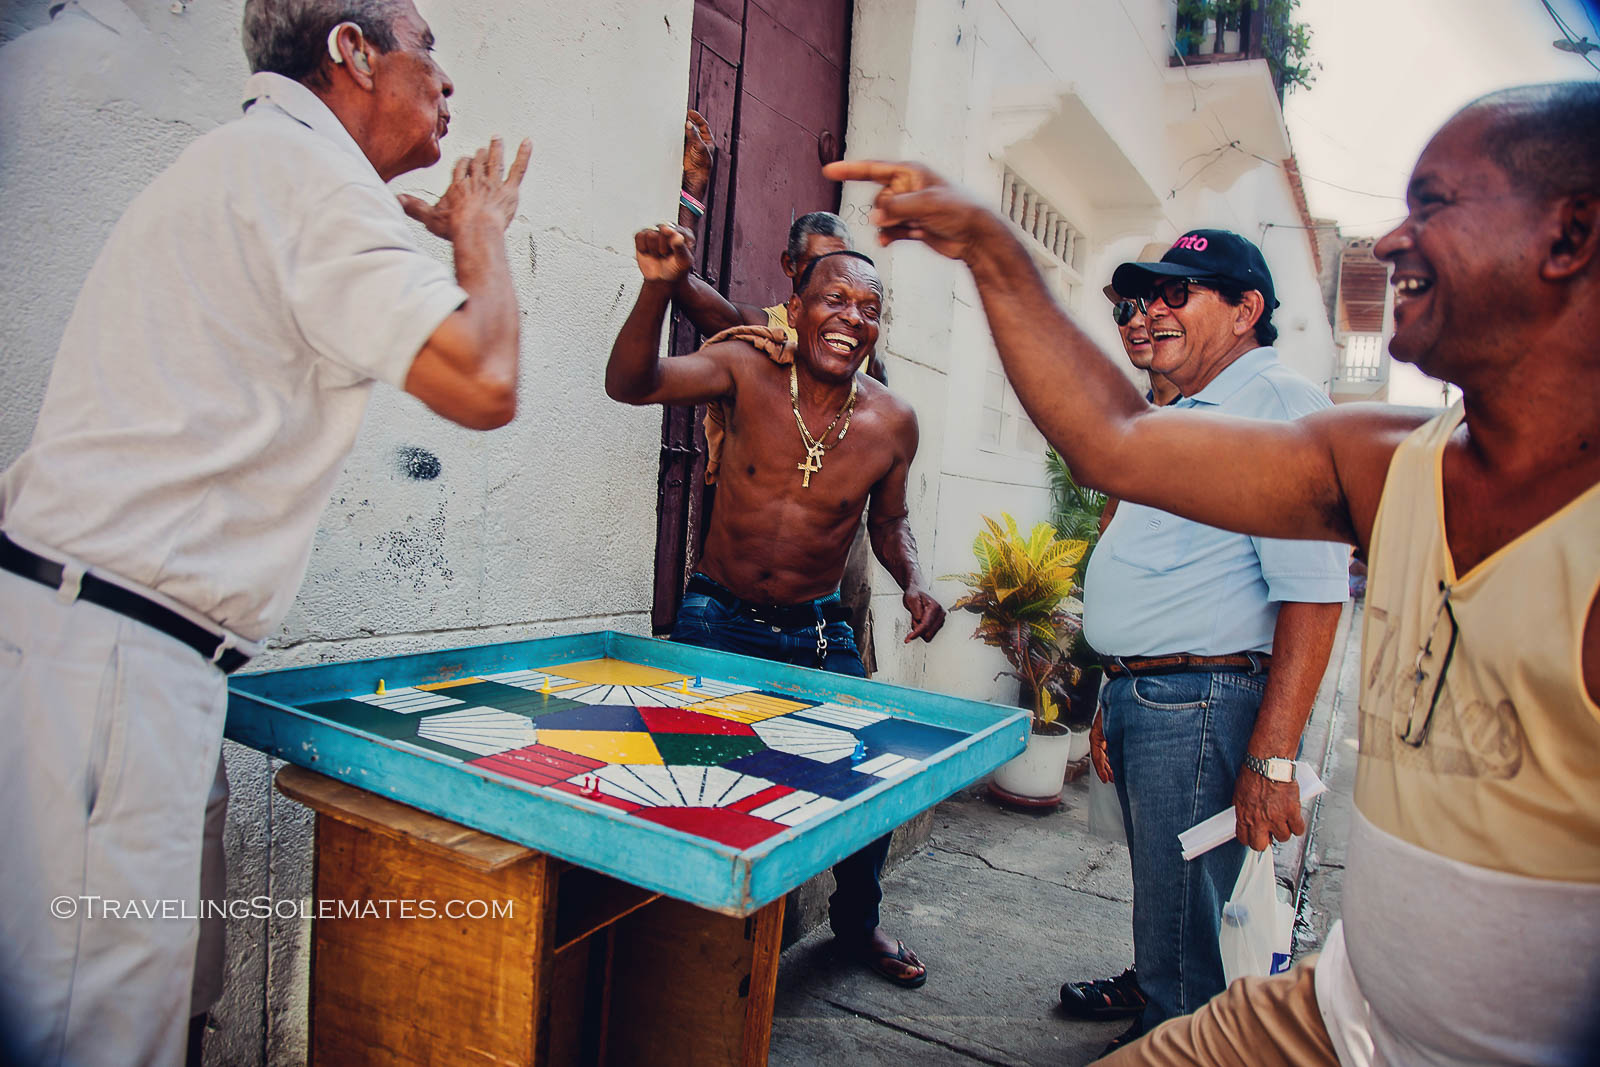 Locals playing games on the street in Getsemani, Cartagena, Colombia